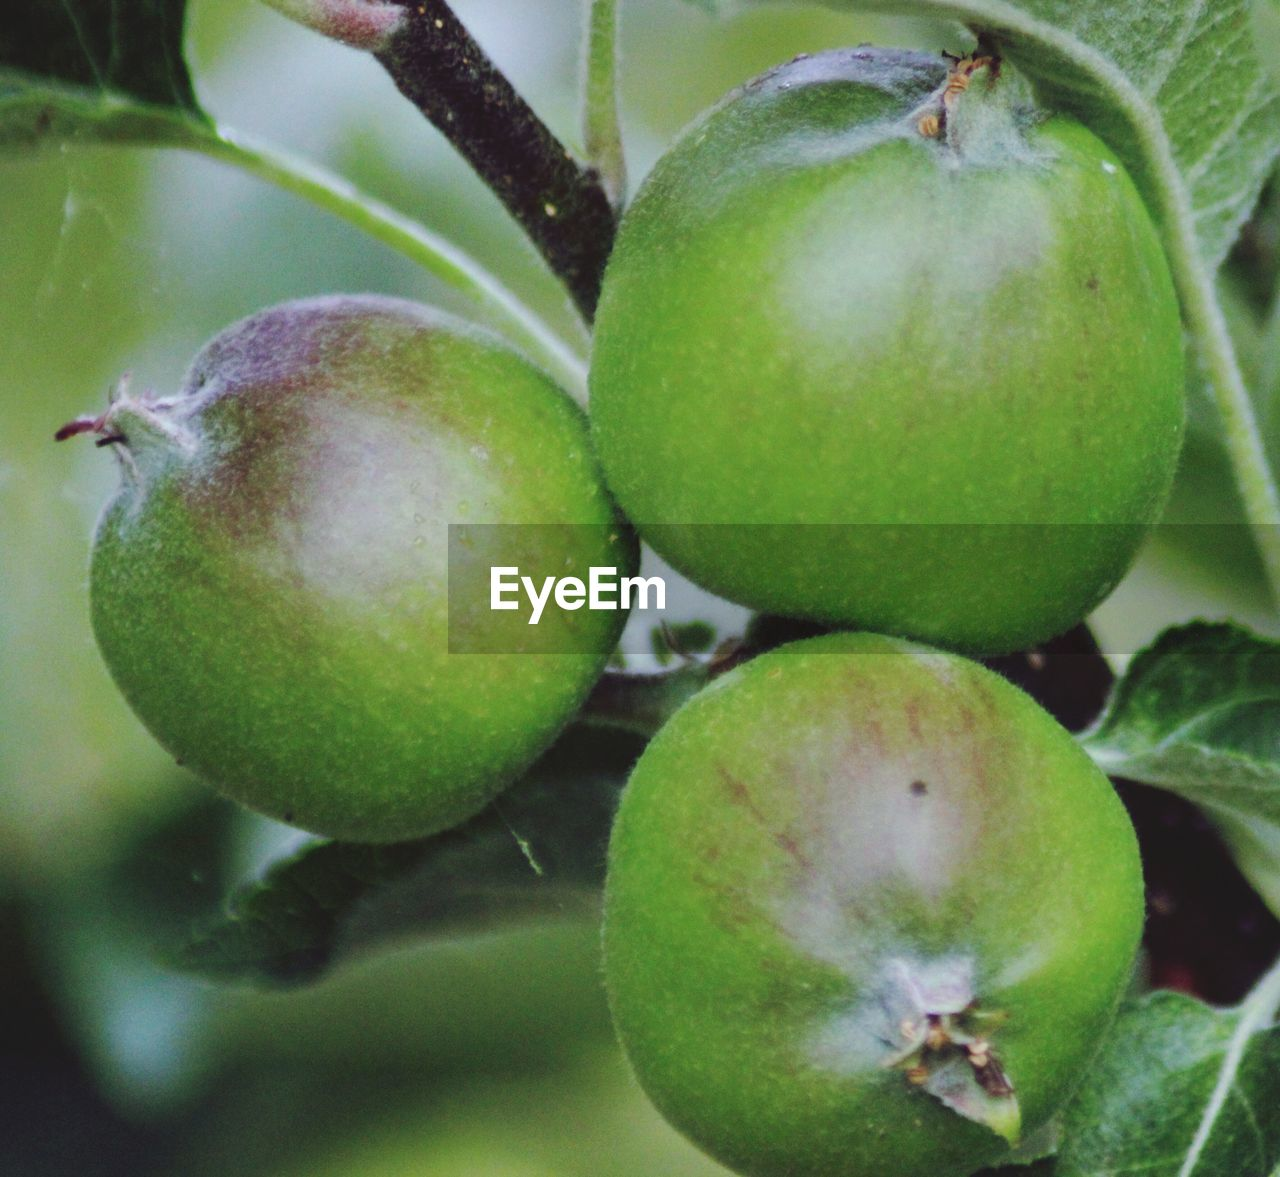 fruit, food and drink, food, healthy eating, green color, freshness, close-up, no people, growth, unripe, outdoors, day, apple - fruit, leaf, nature, tree